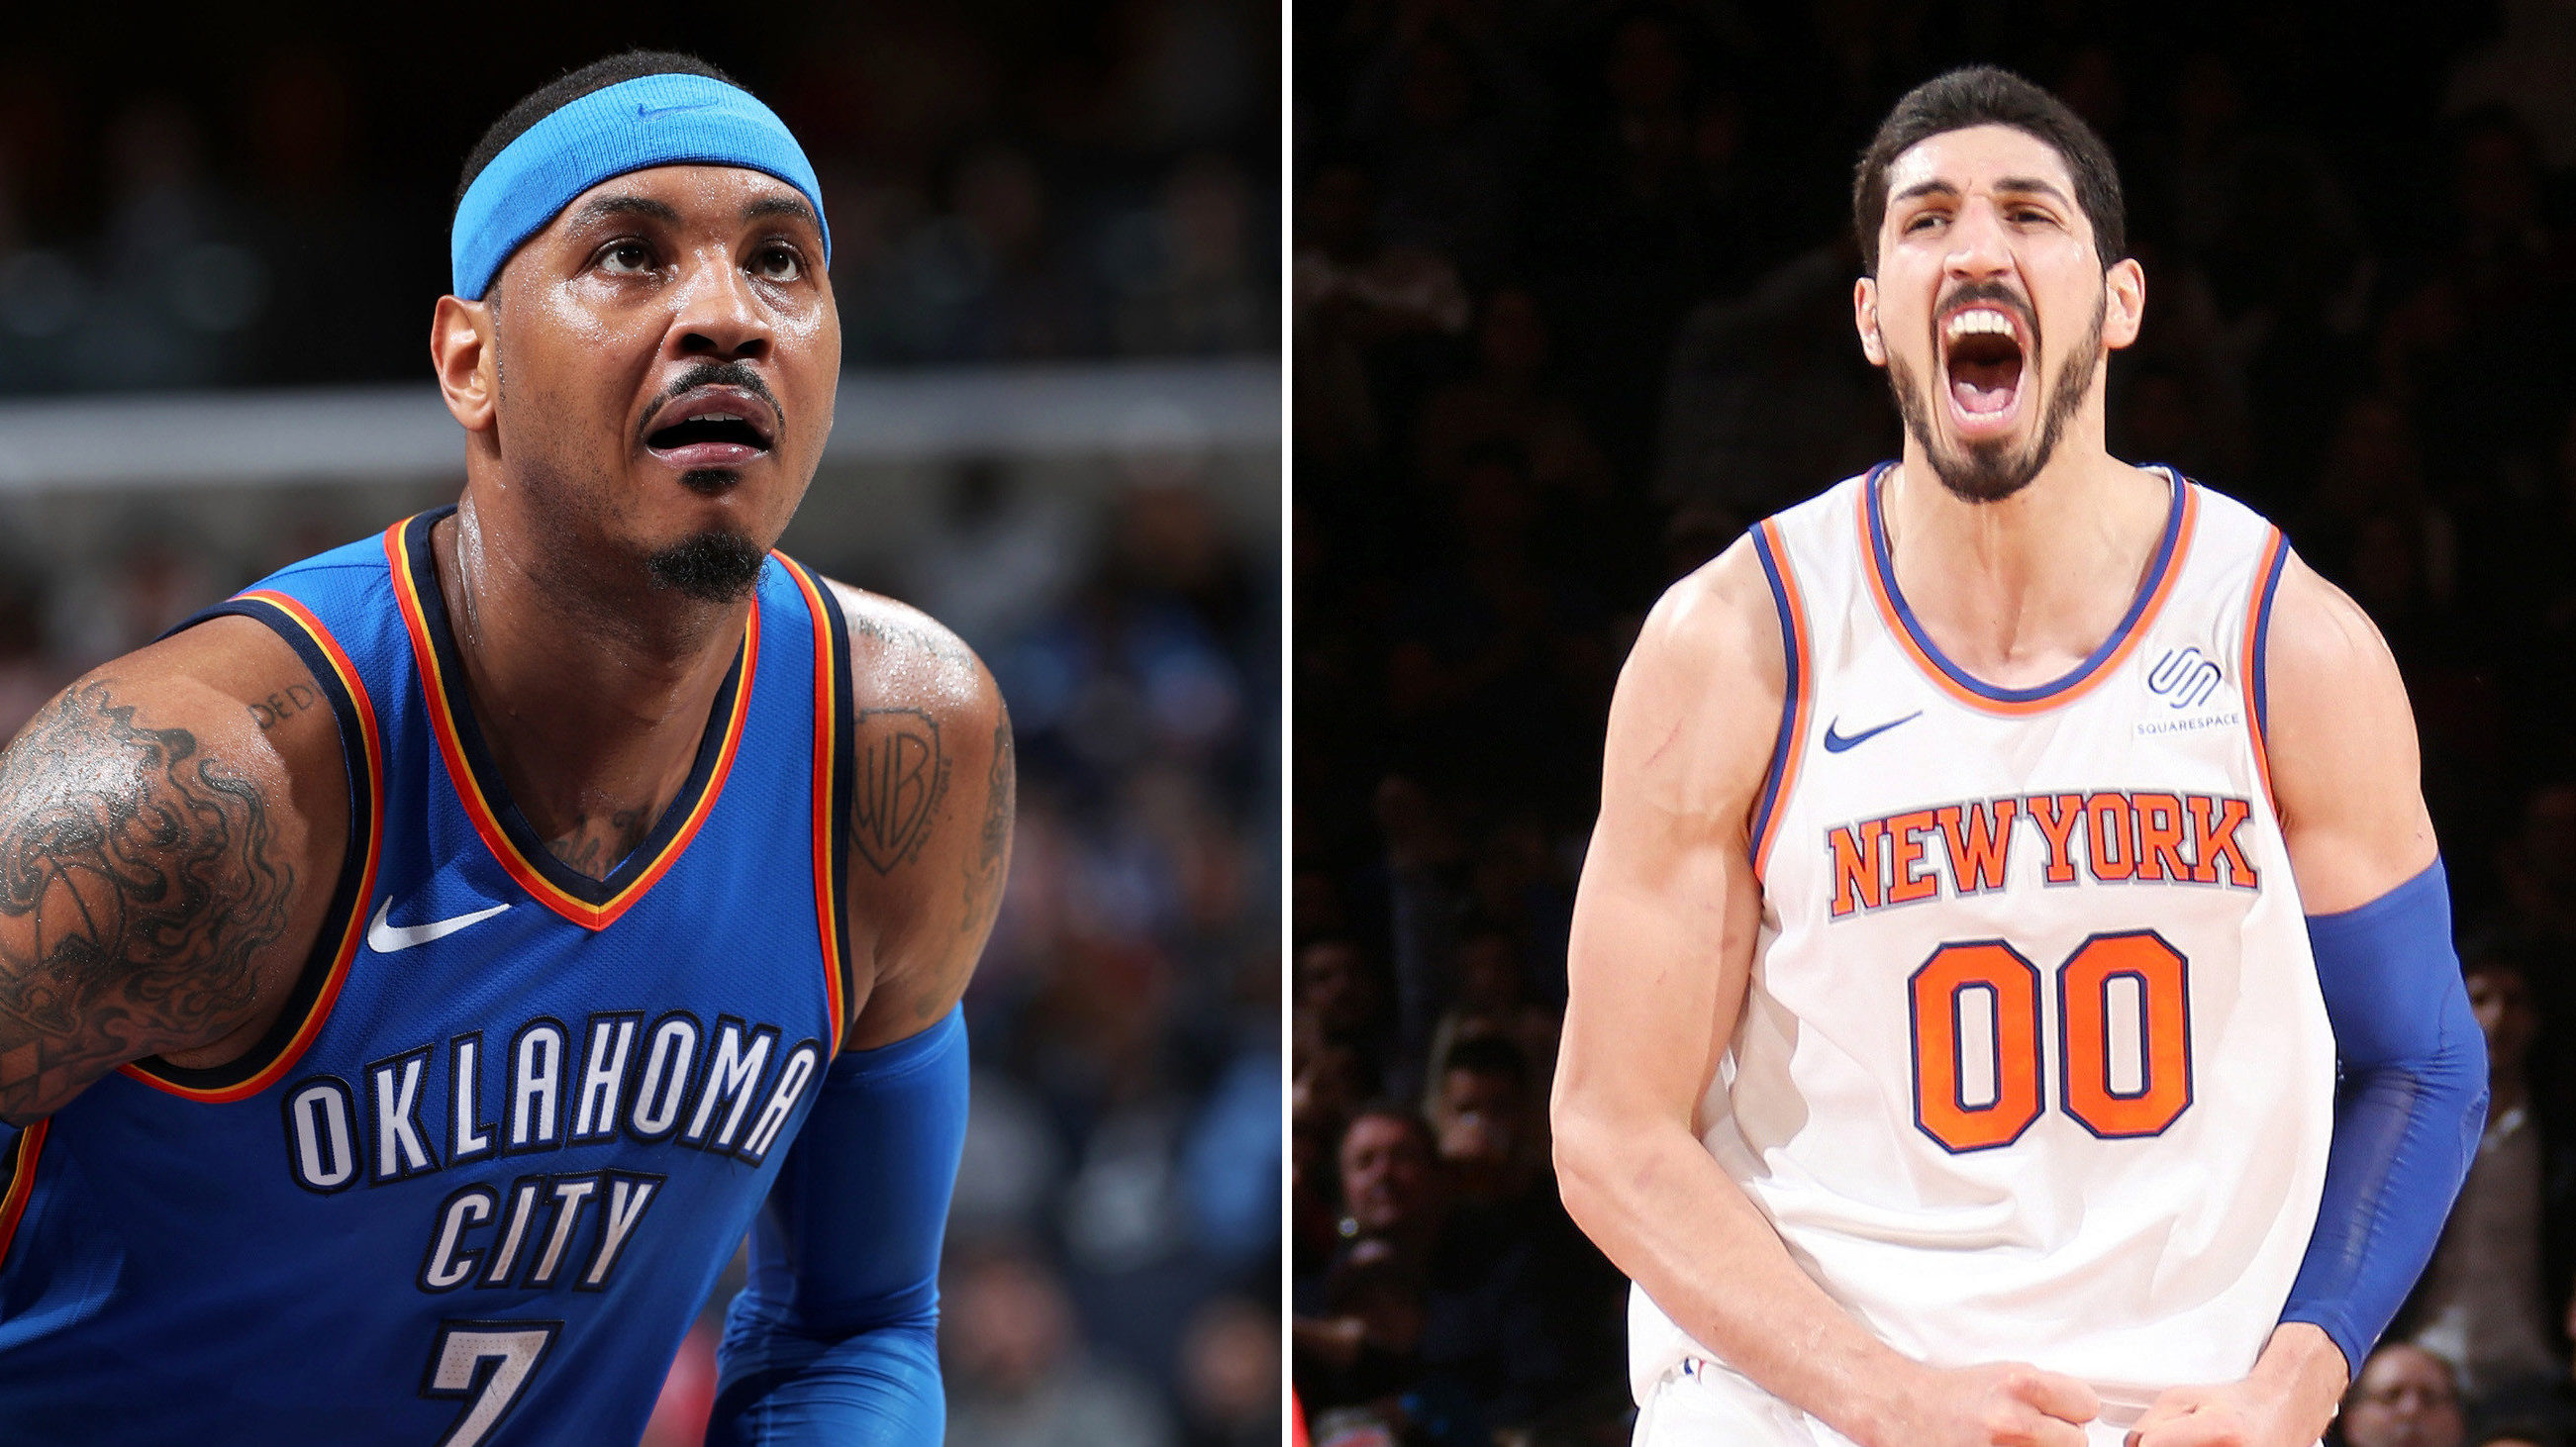 Enes Kanter NBA Carmelo Anthony New York Knicks Trade Deal